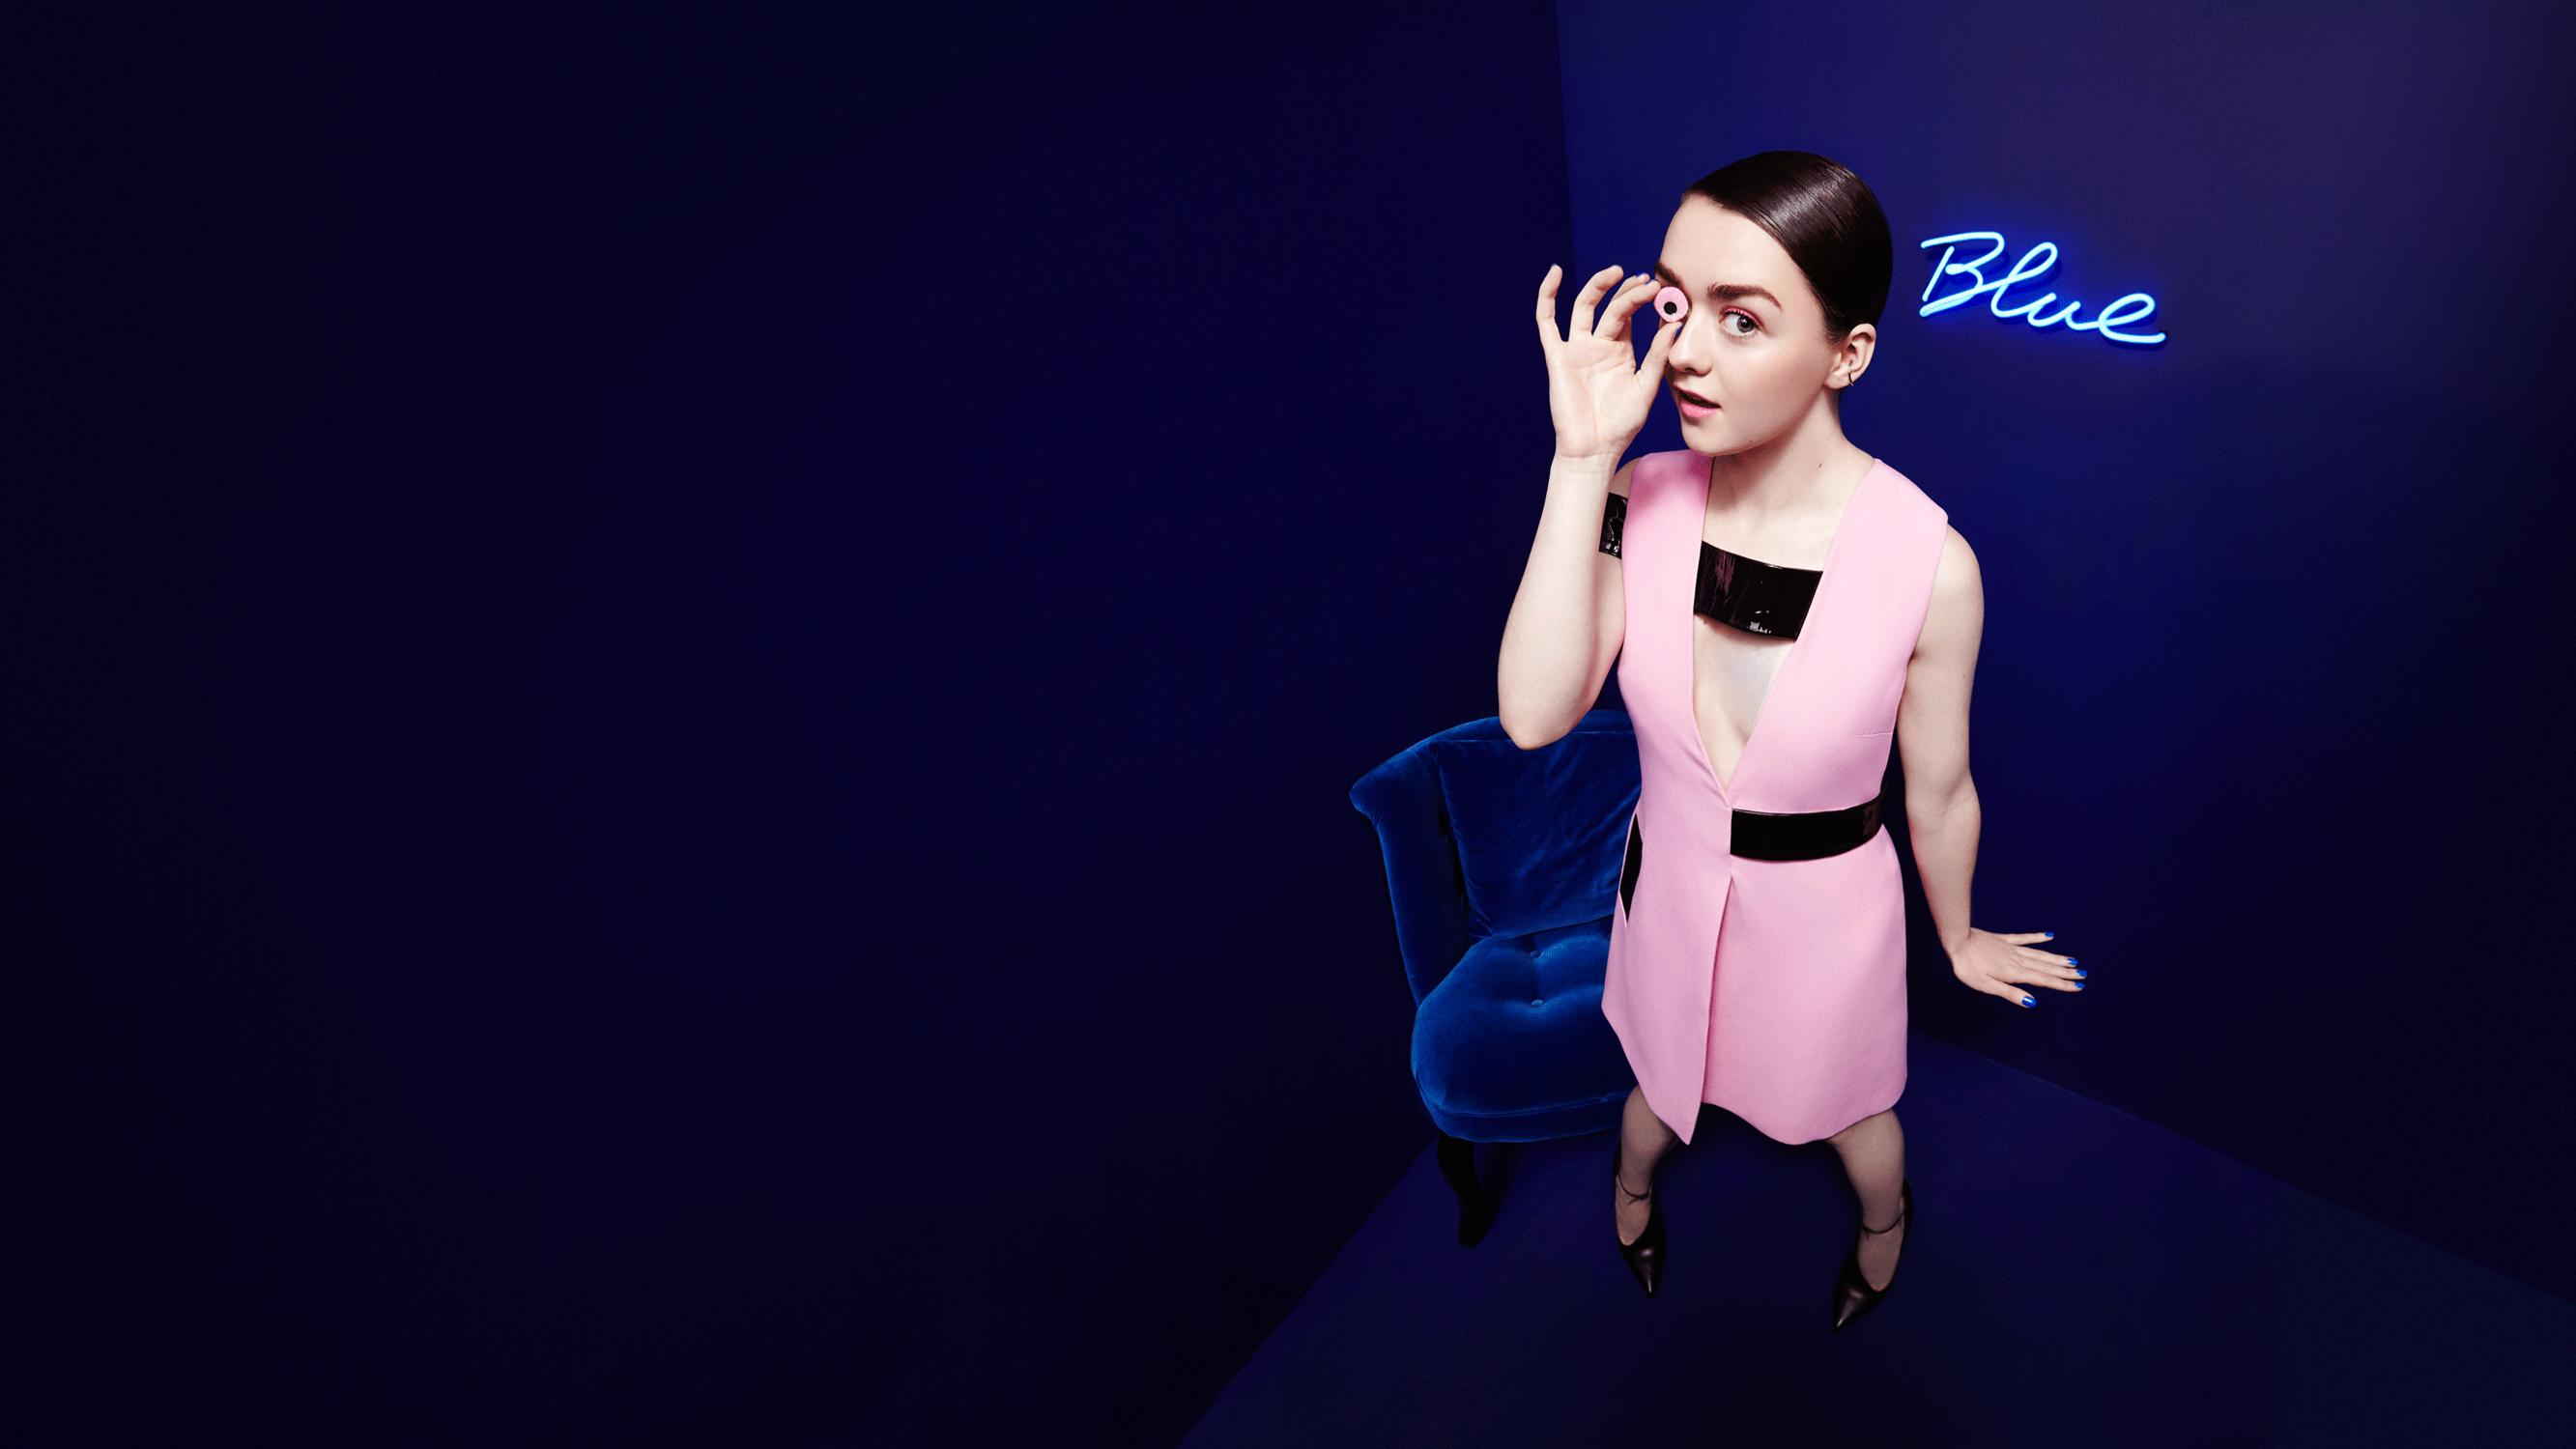 2666x1500 - Maisie Williams Wallpapers 25